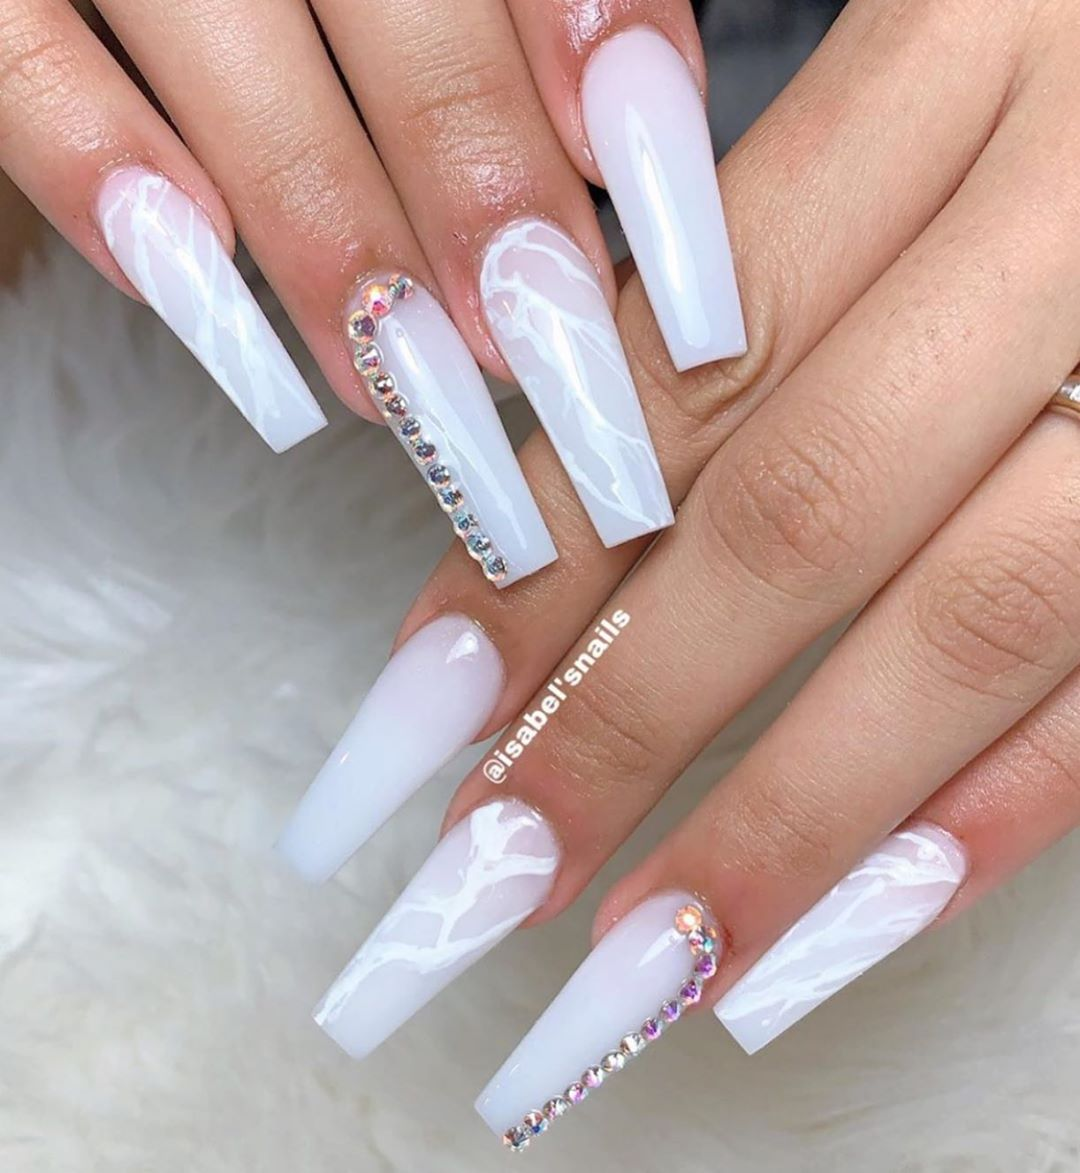 Long Nail Designs To Inspire You - Glossy Nails With Glitters